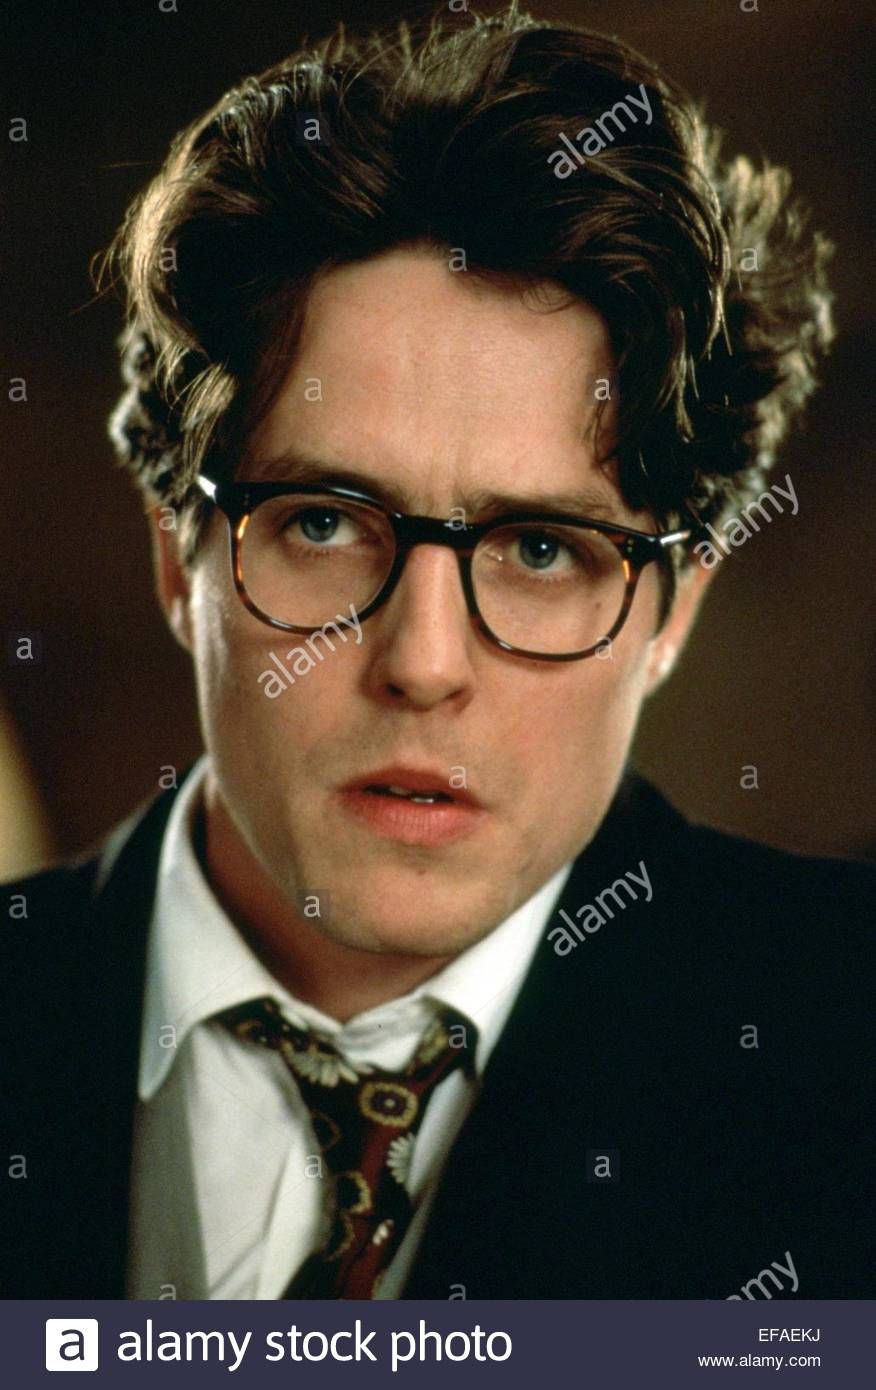 Hugh Grant Four Weddings And A Funeral 1994 Stock Photo Royalty Free Image 78292358 Alamy Hugh Grant Photo Grant